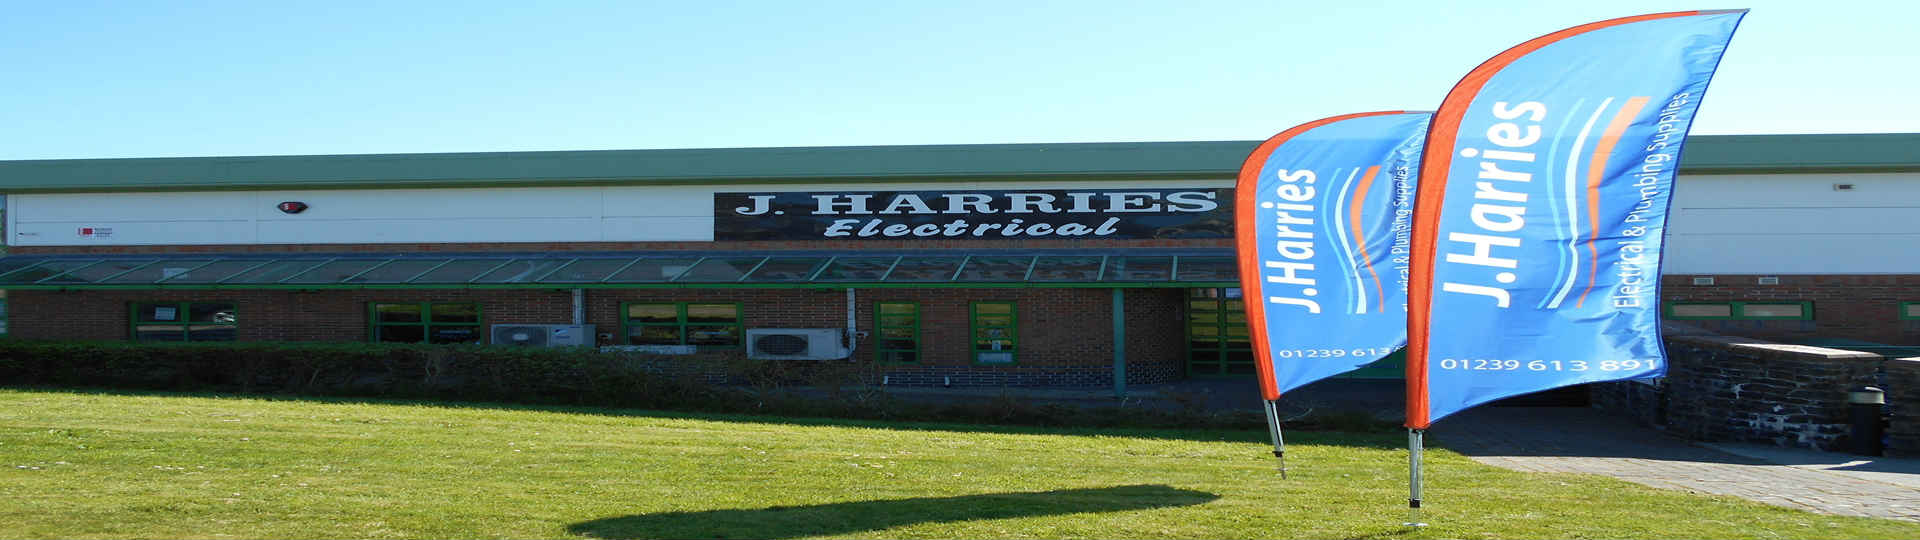 J Harries Electrical & Domestic Appliance Shop Cardigan